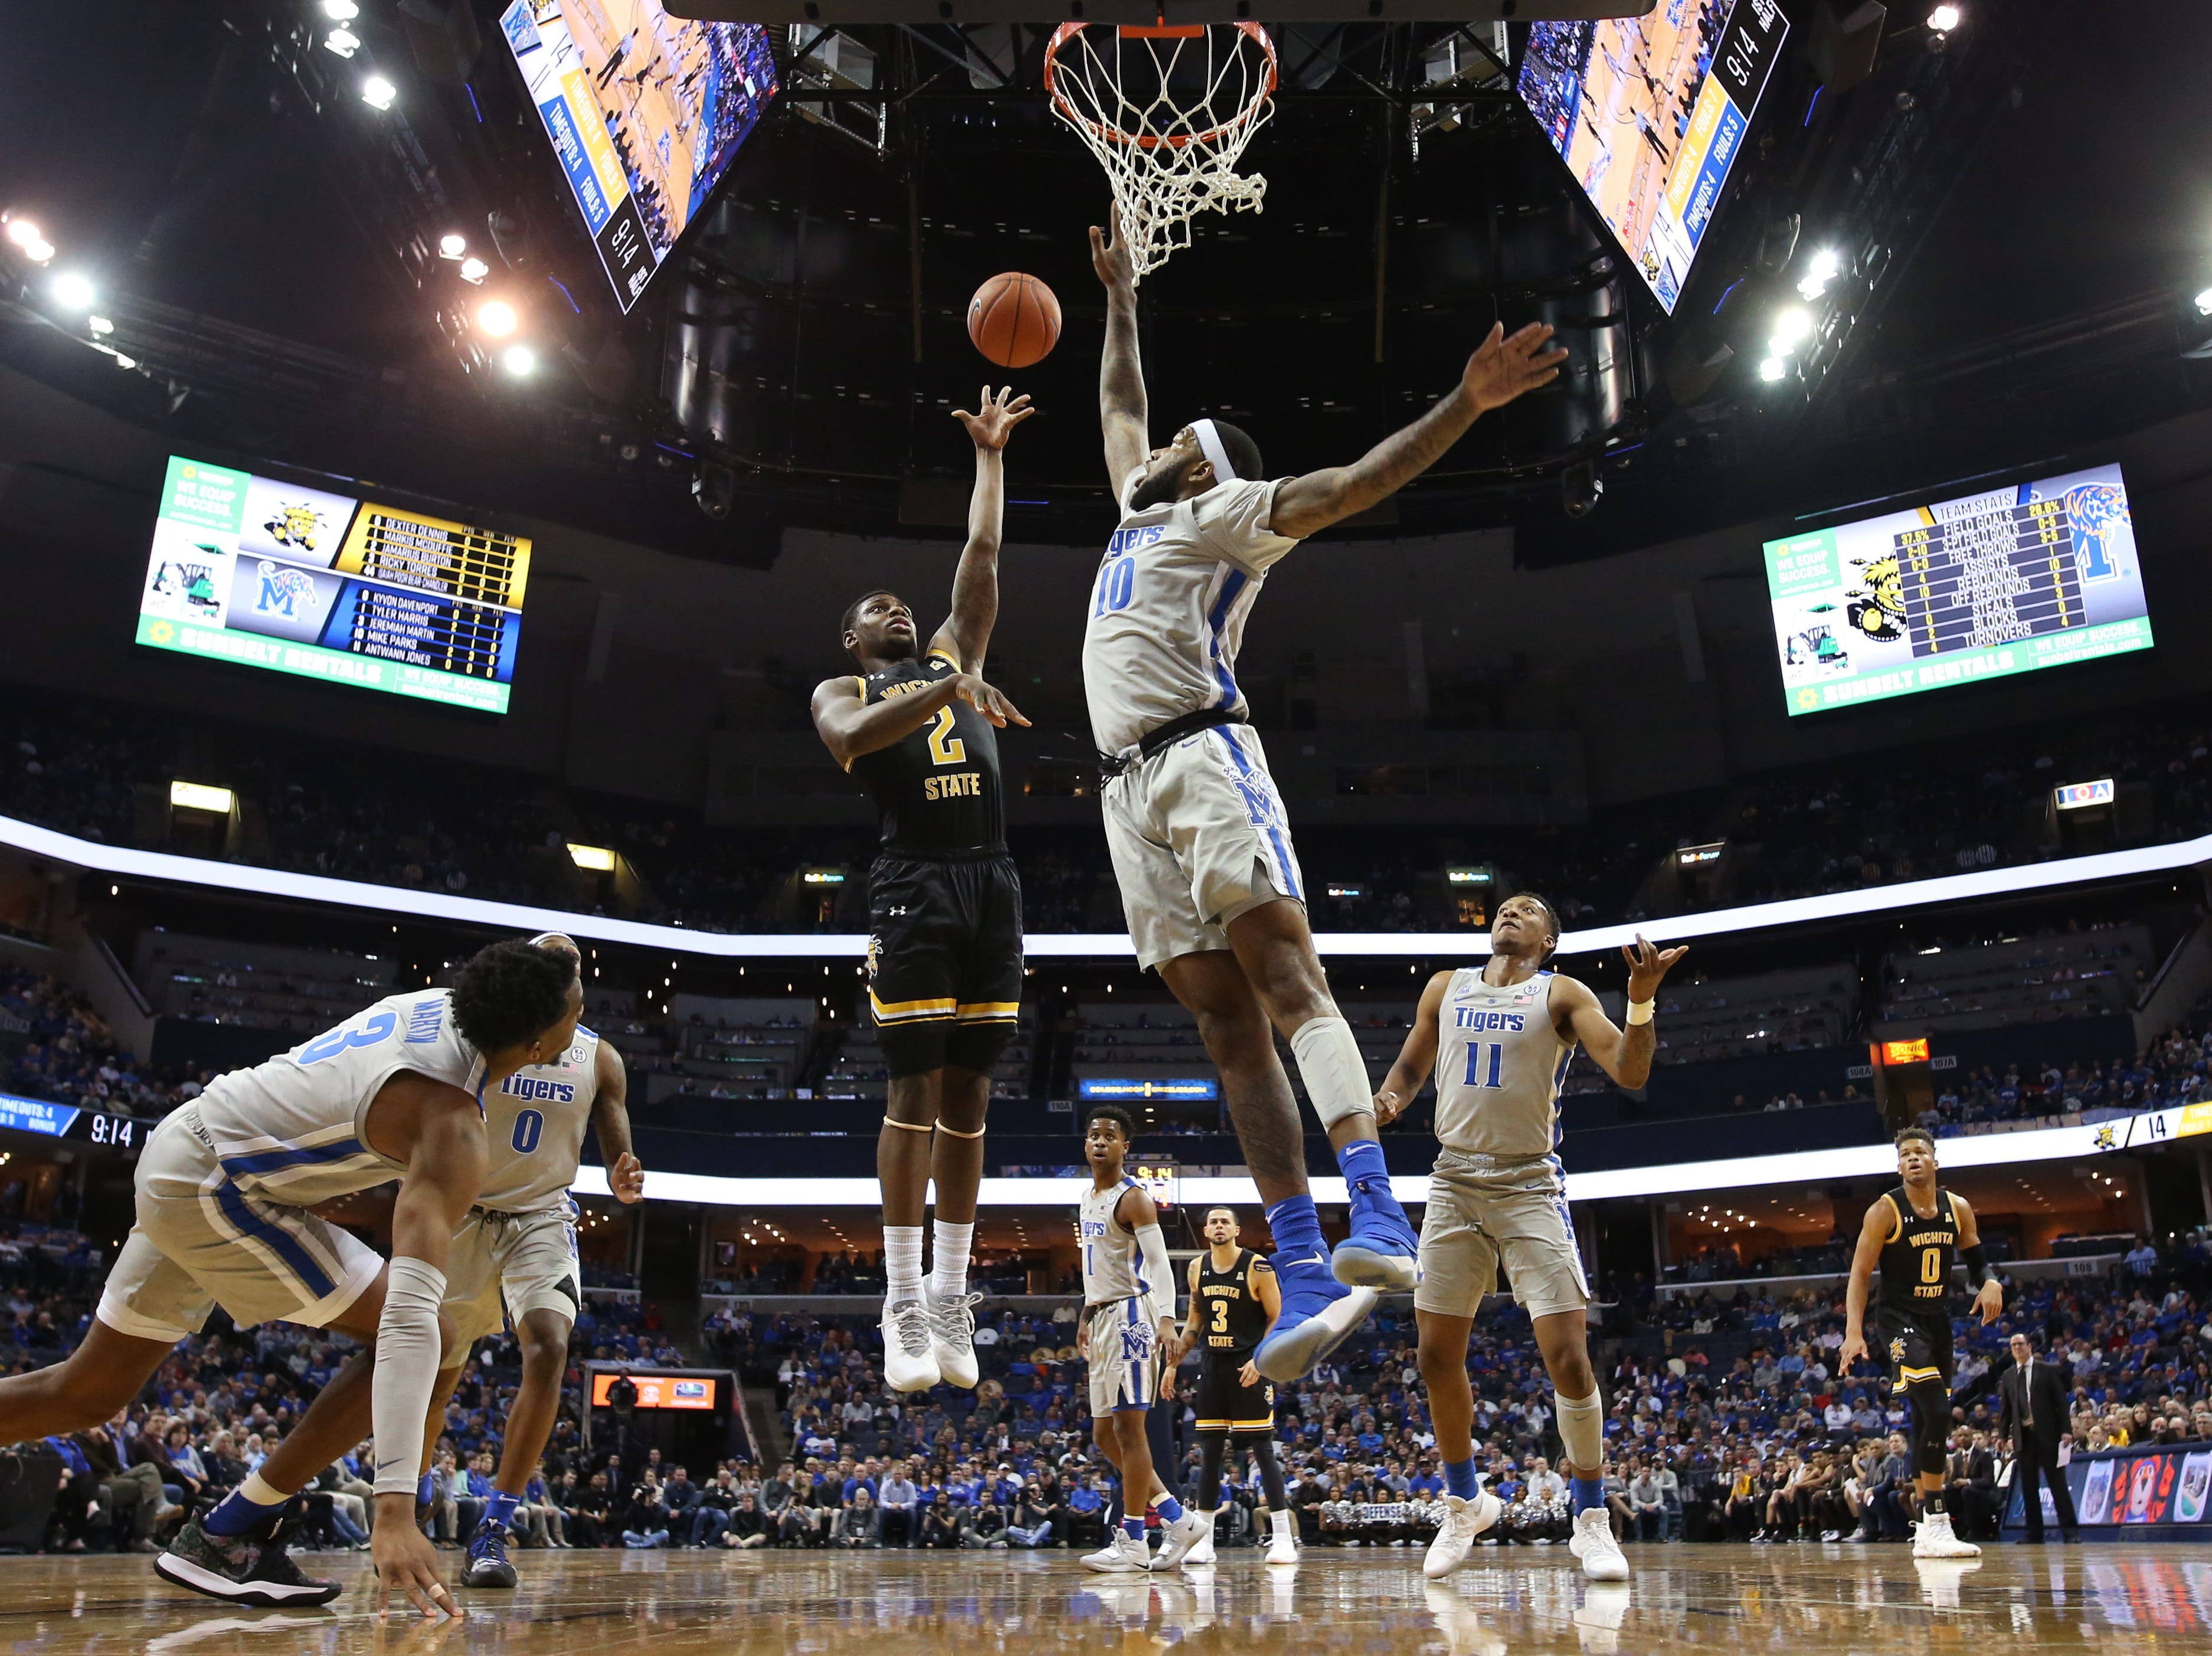 Memphis Tigers forward Mike Parks Jr. blocks a shot by Wichita State Shockers forward Jamarius Burton during their game at the FedExForum on Thursday, Jan. 3, 2019.